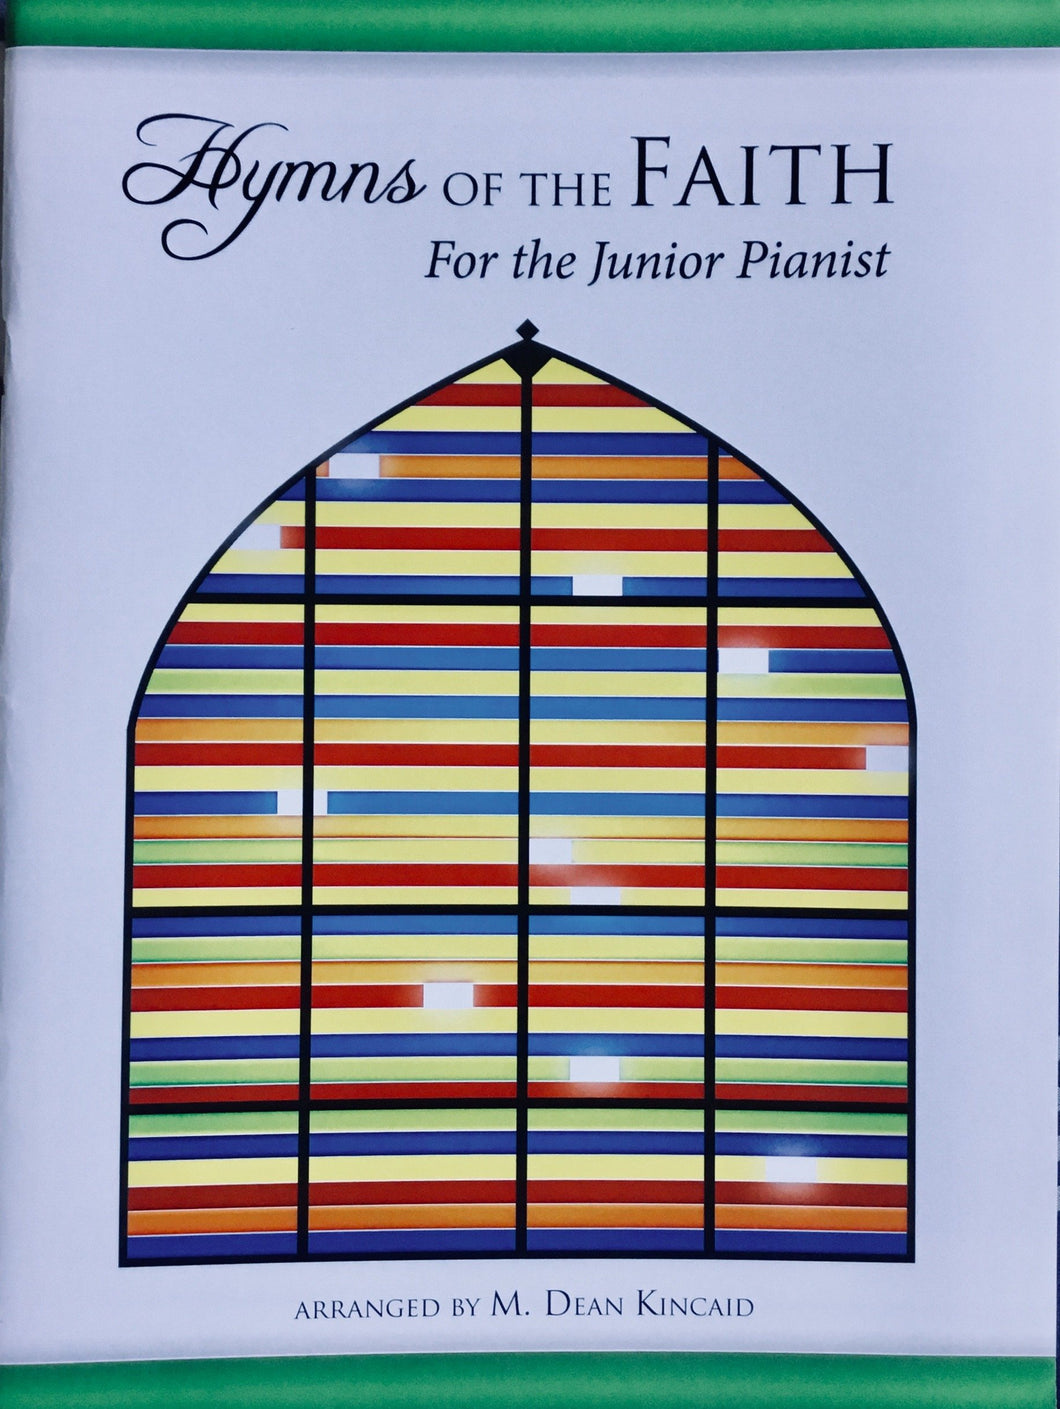 Hymns of the Faith for the Junior Pianist